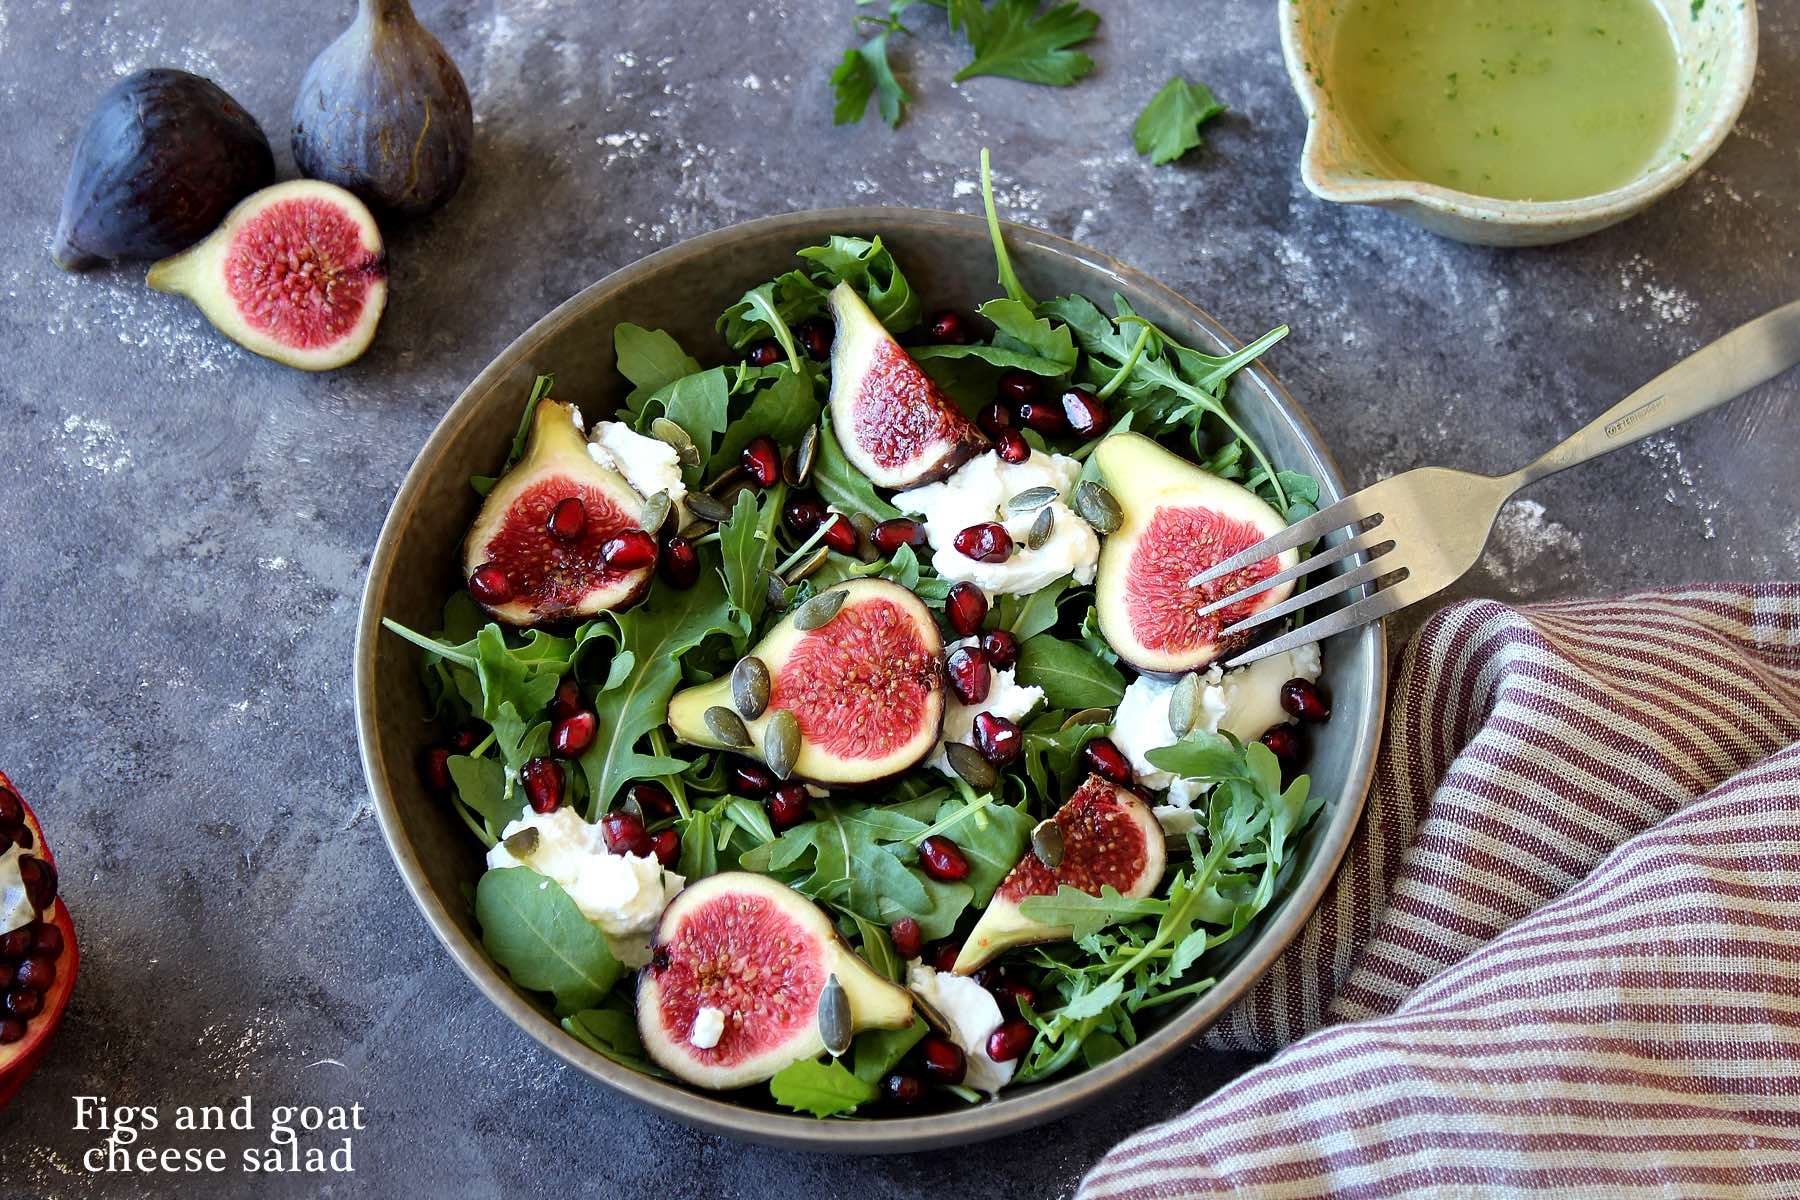 Figs & goat cheese salad